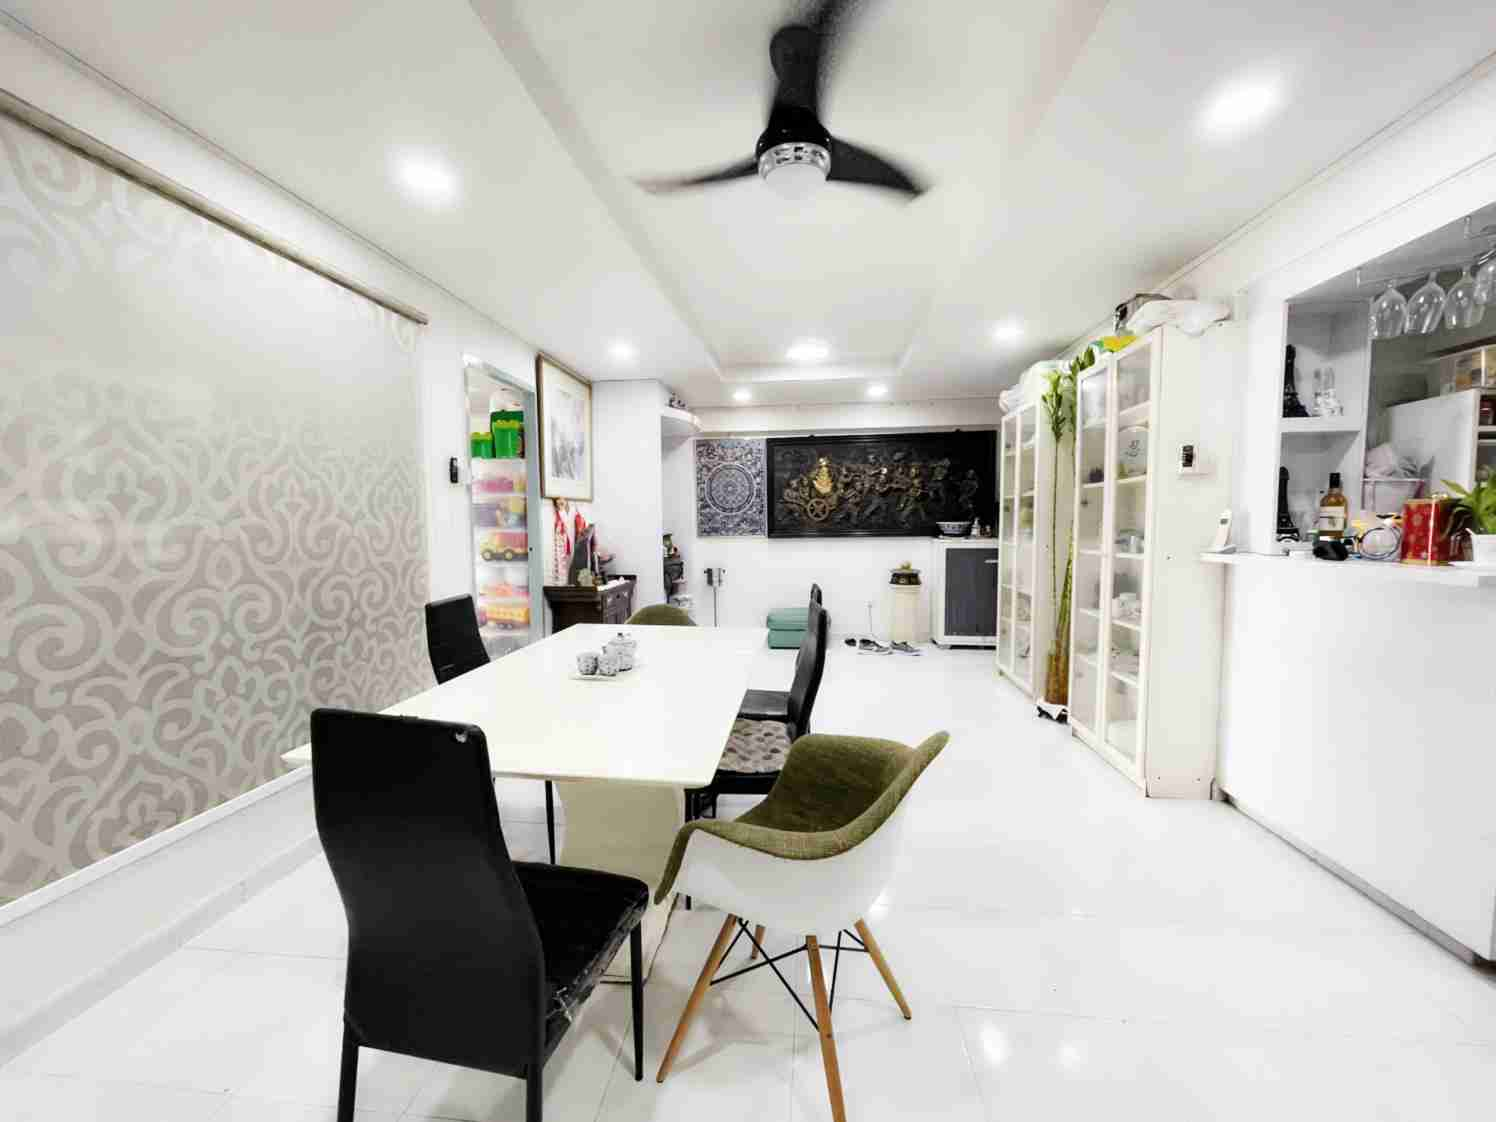 sengkang resale property - 318C Anchorvale Link Living Room Another View